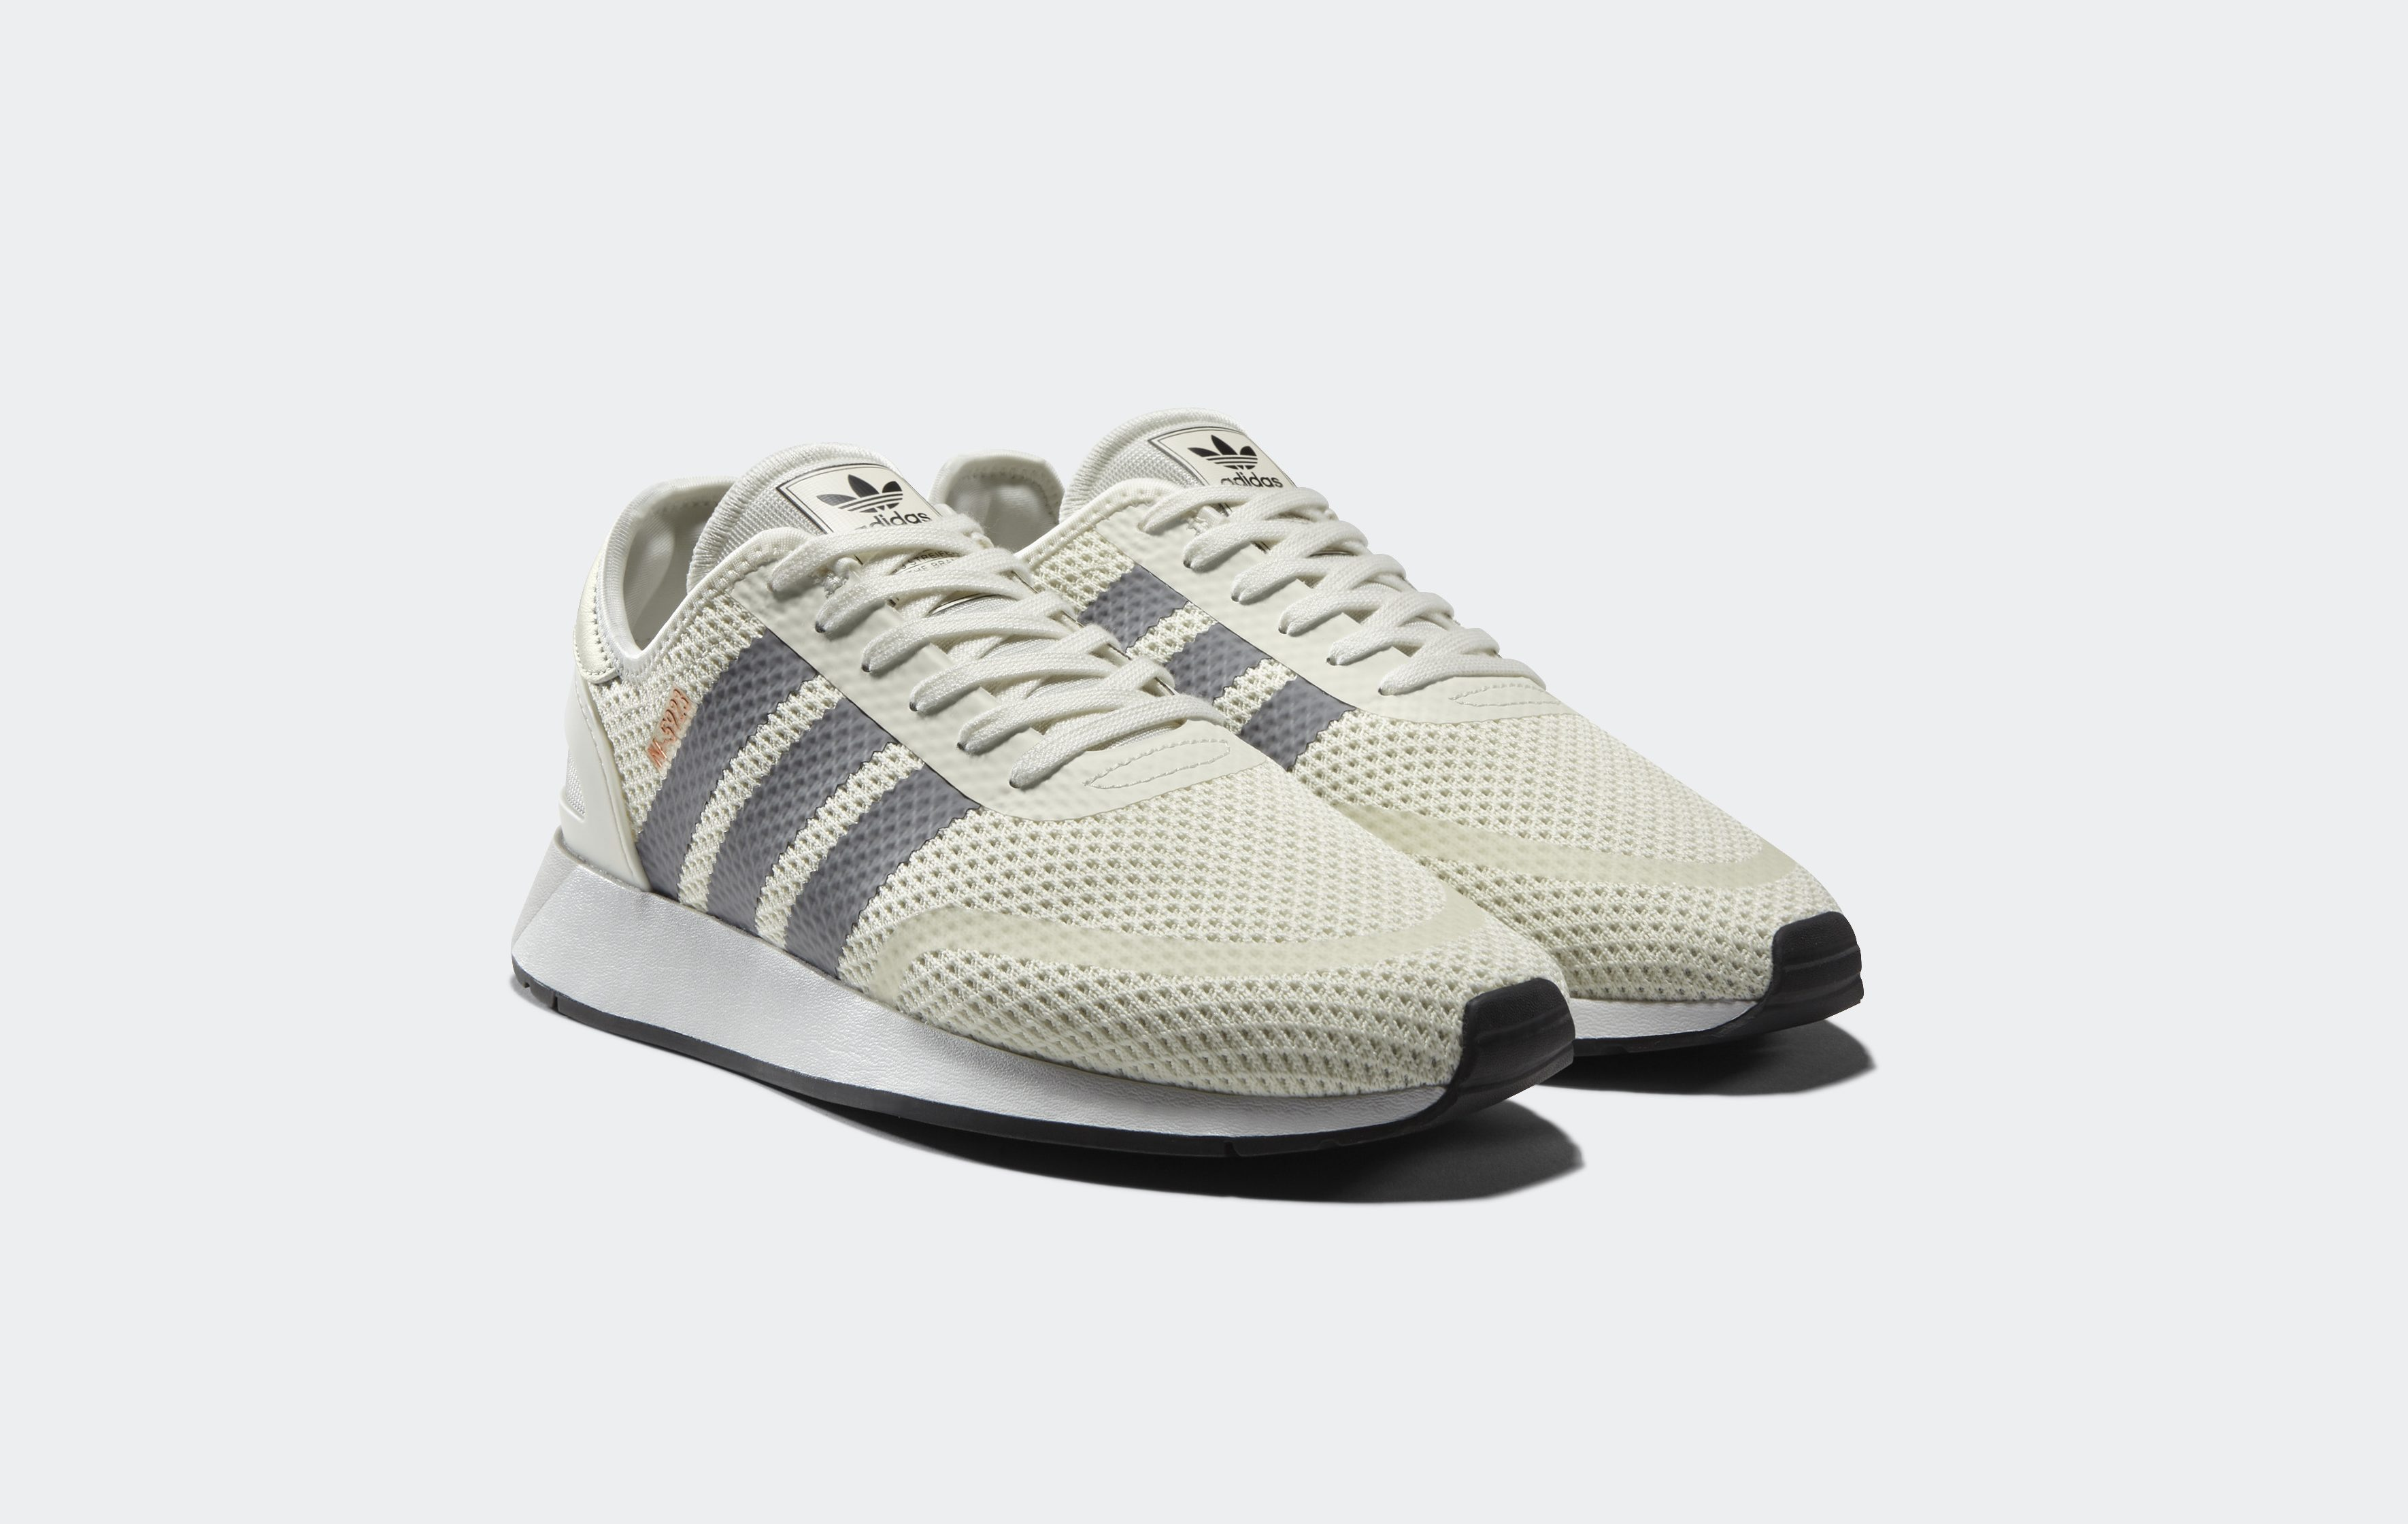 acero reposo Mucho bien bueno  The adidas I-5923 Sheds its Boost and Becomes the N-5923 in New Street Pack  - WearTesters